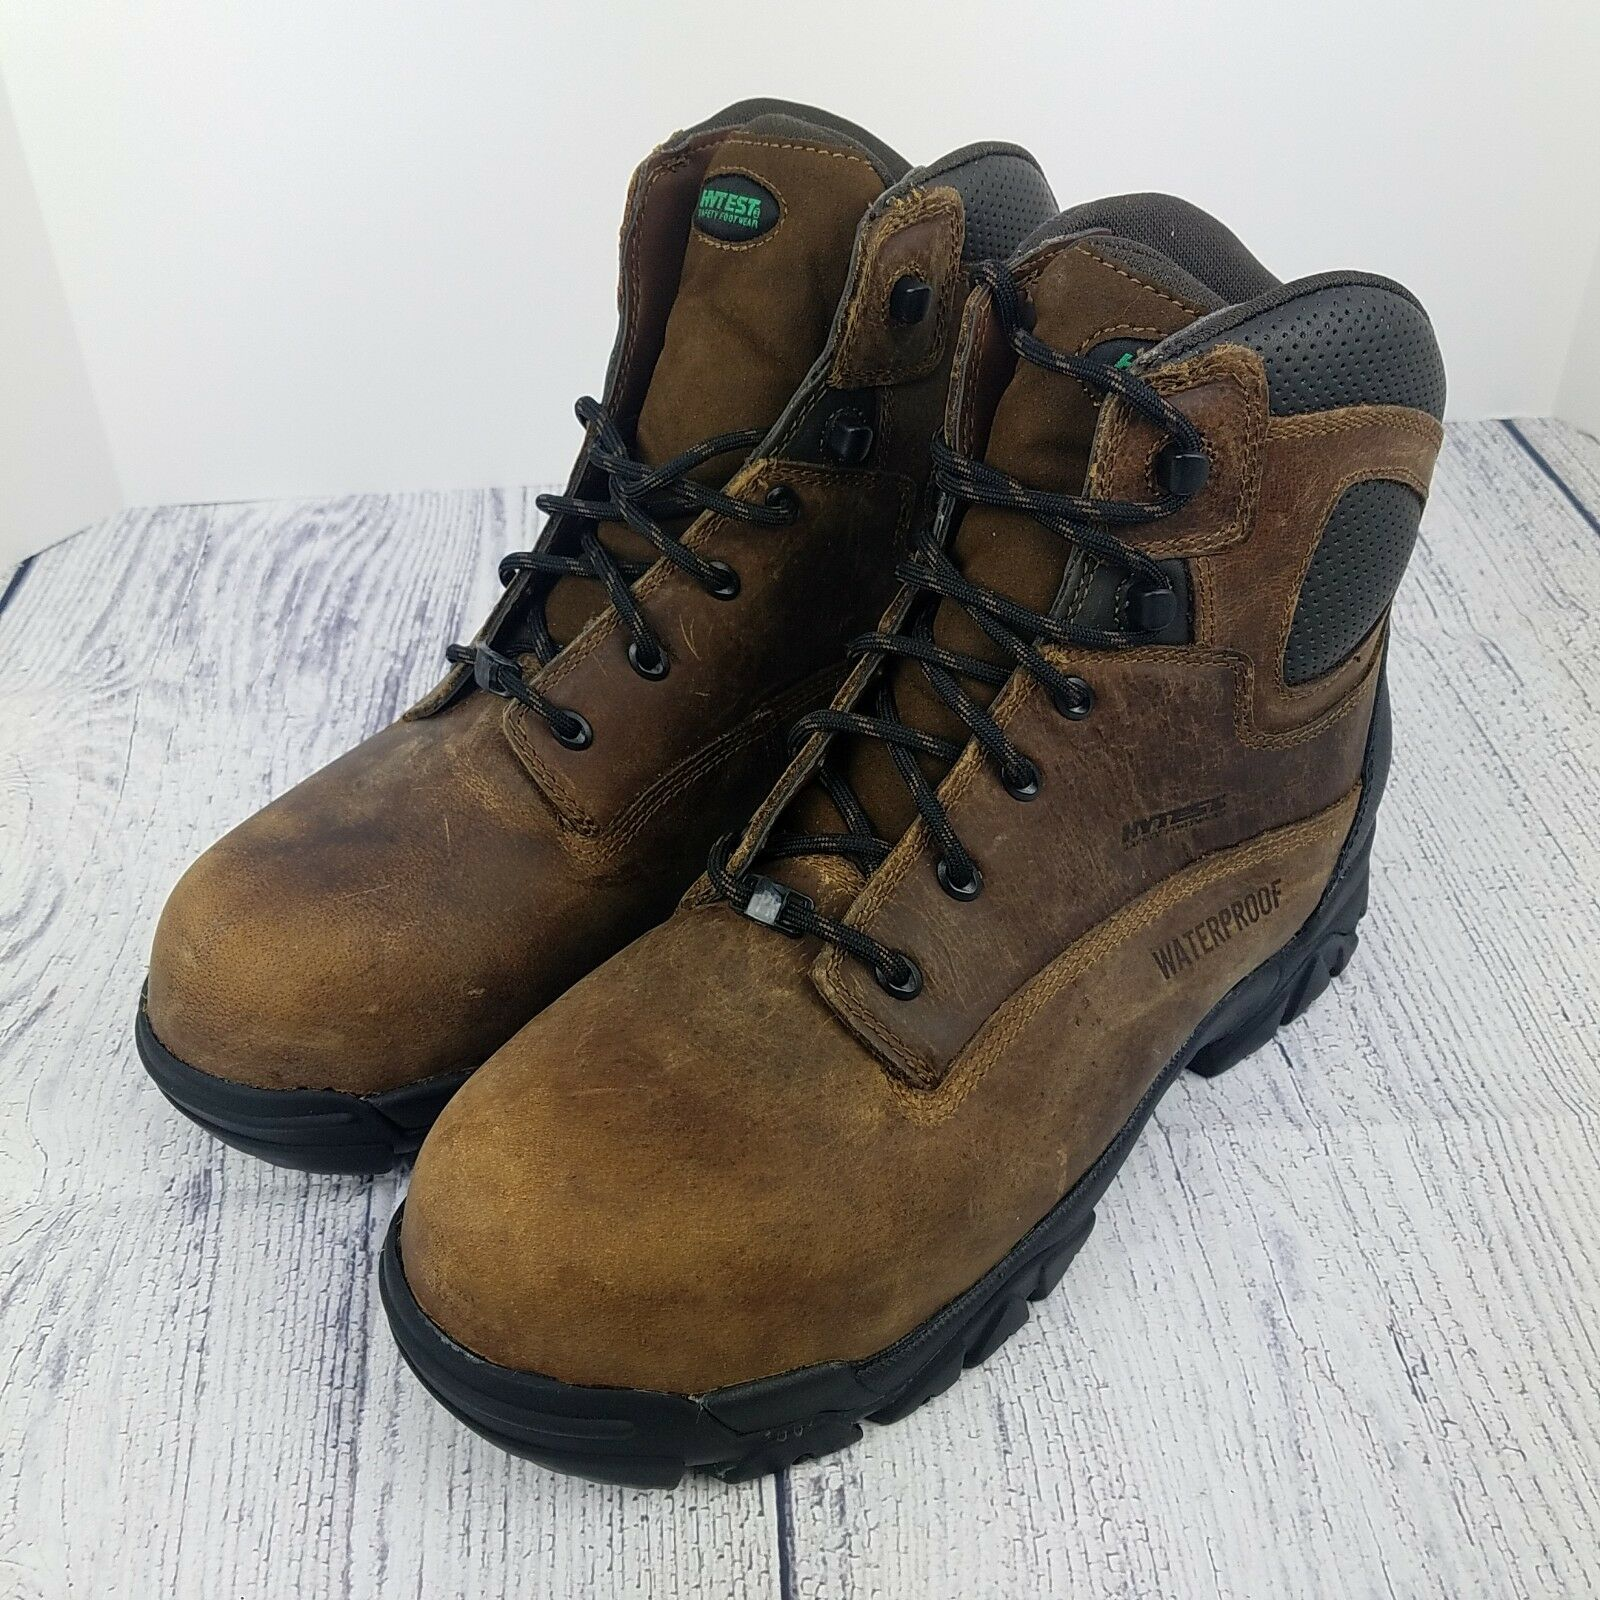 Hytest Hiker Safety Work Boots WP EH PR Mens 11 M Electrical Hazard Comp Toe New